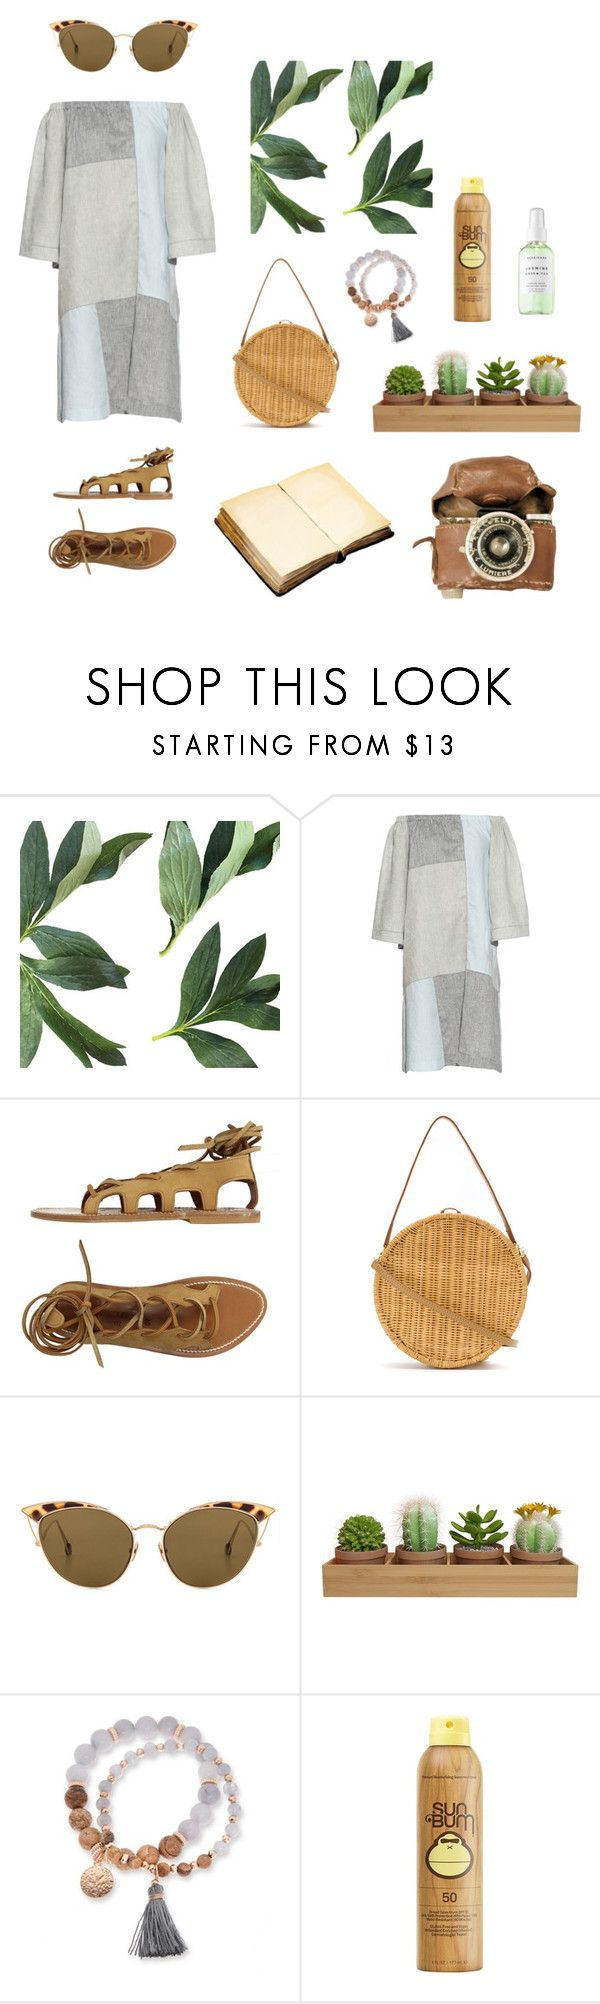 """""""Ojai"""" by stephc ❤ liked on Polyvore featuring Lisa Marie Fernandez, K. Jacques, Serpui, Ahlem, Kim Rogers, Sun Bum and Herbivore"""